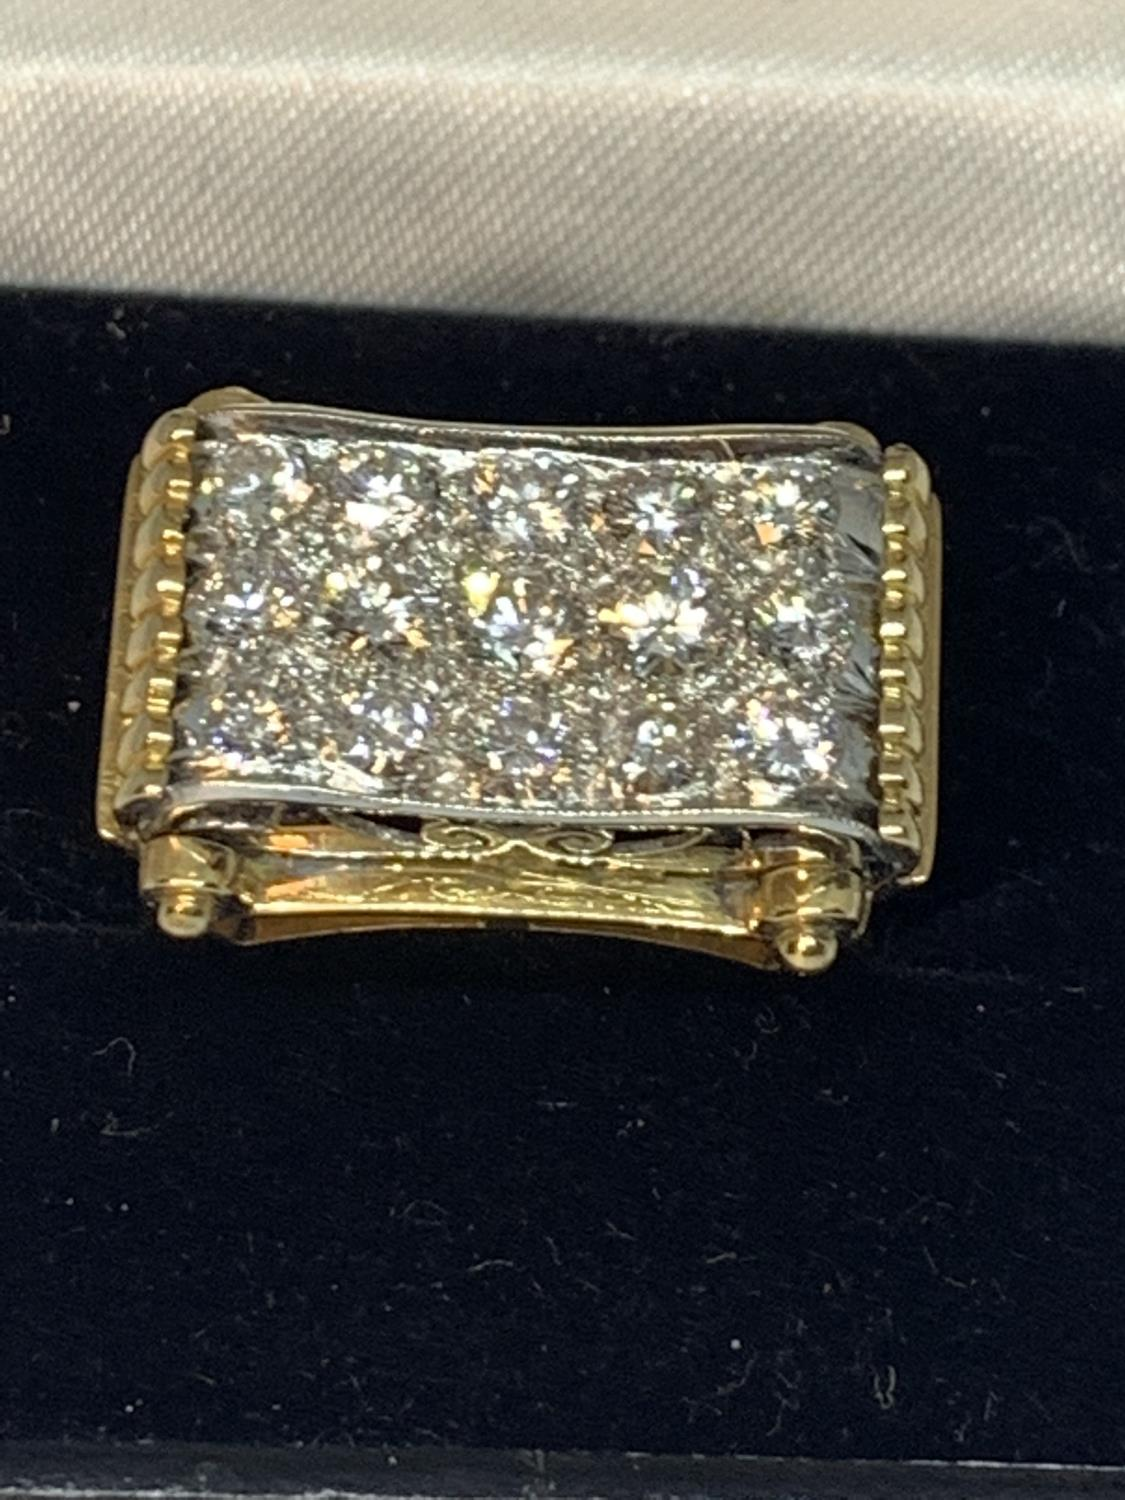 A HEAVY 18 CARAT GOLD RING WITH FIFTEEN DIAMONDS SET IN A RECTANGLE OF DIAMOND CHIPS GROSS WEIGHT 13 - Image 4 of 10